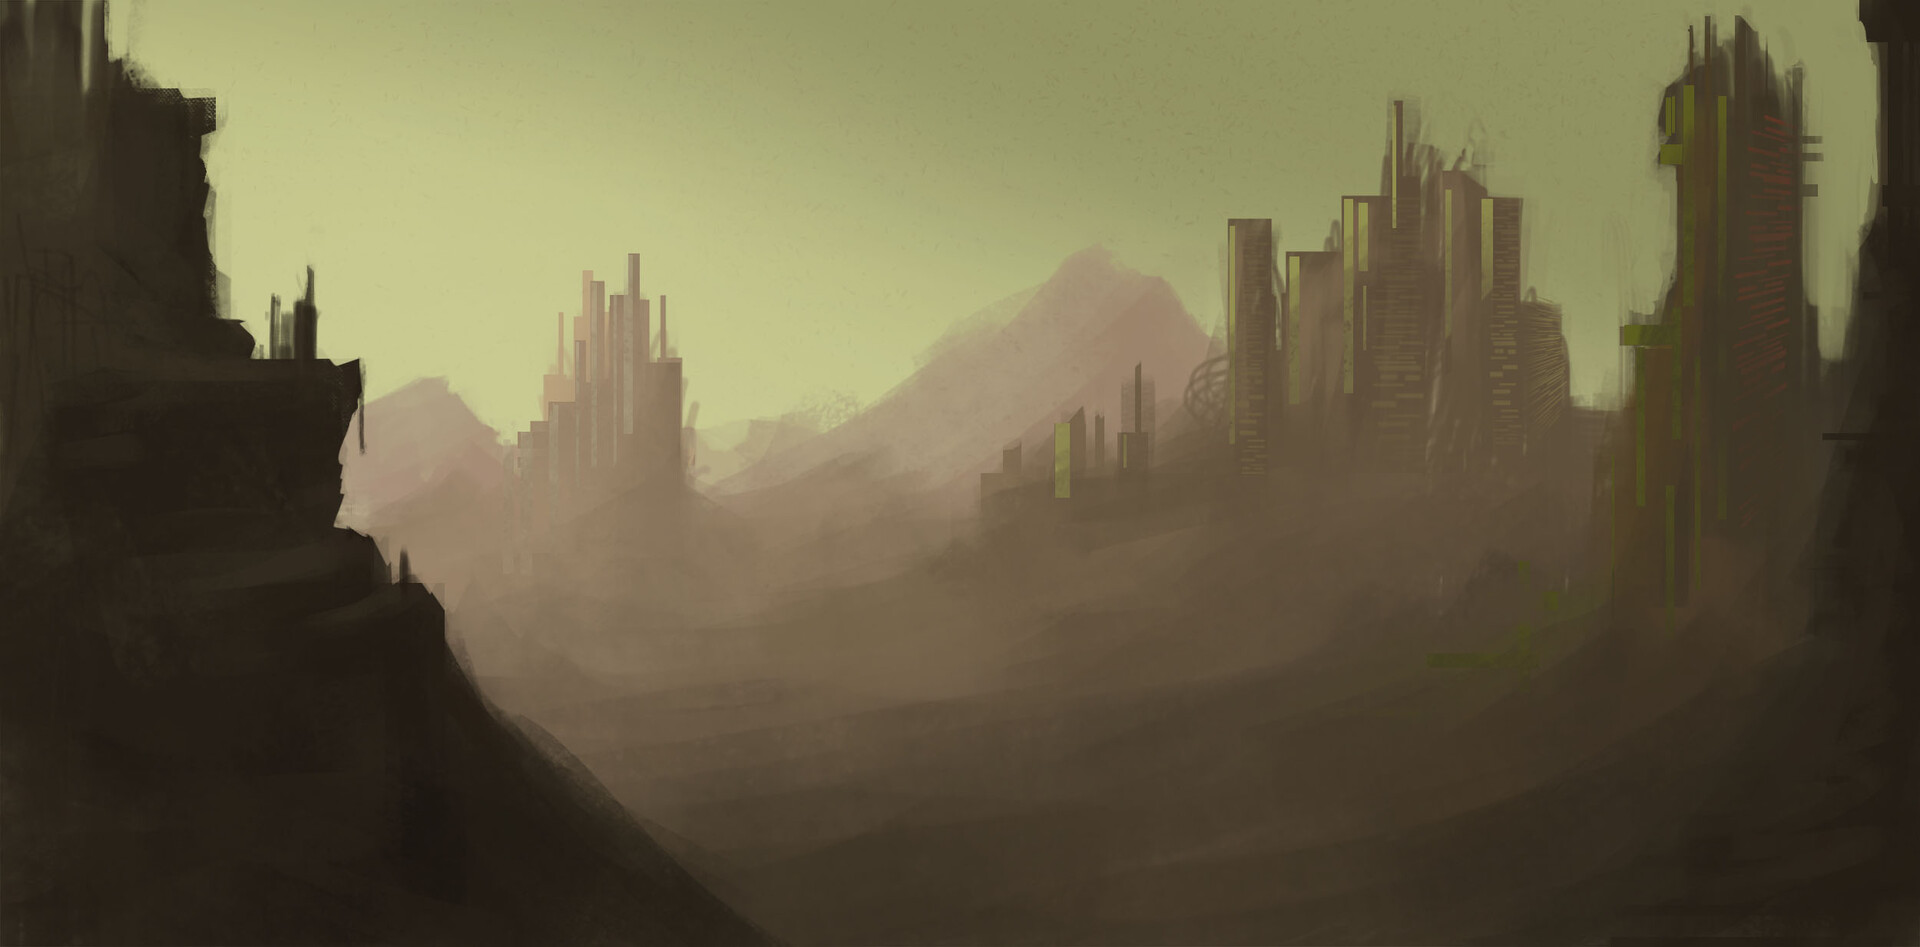 Early sketch of Cities of Dust